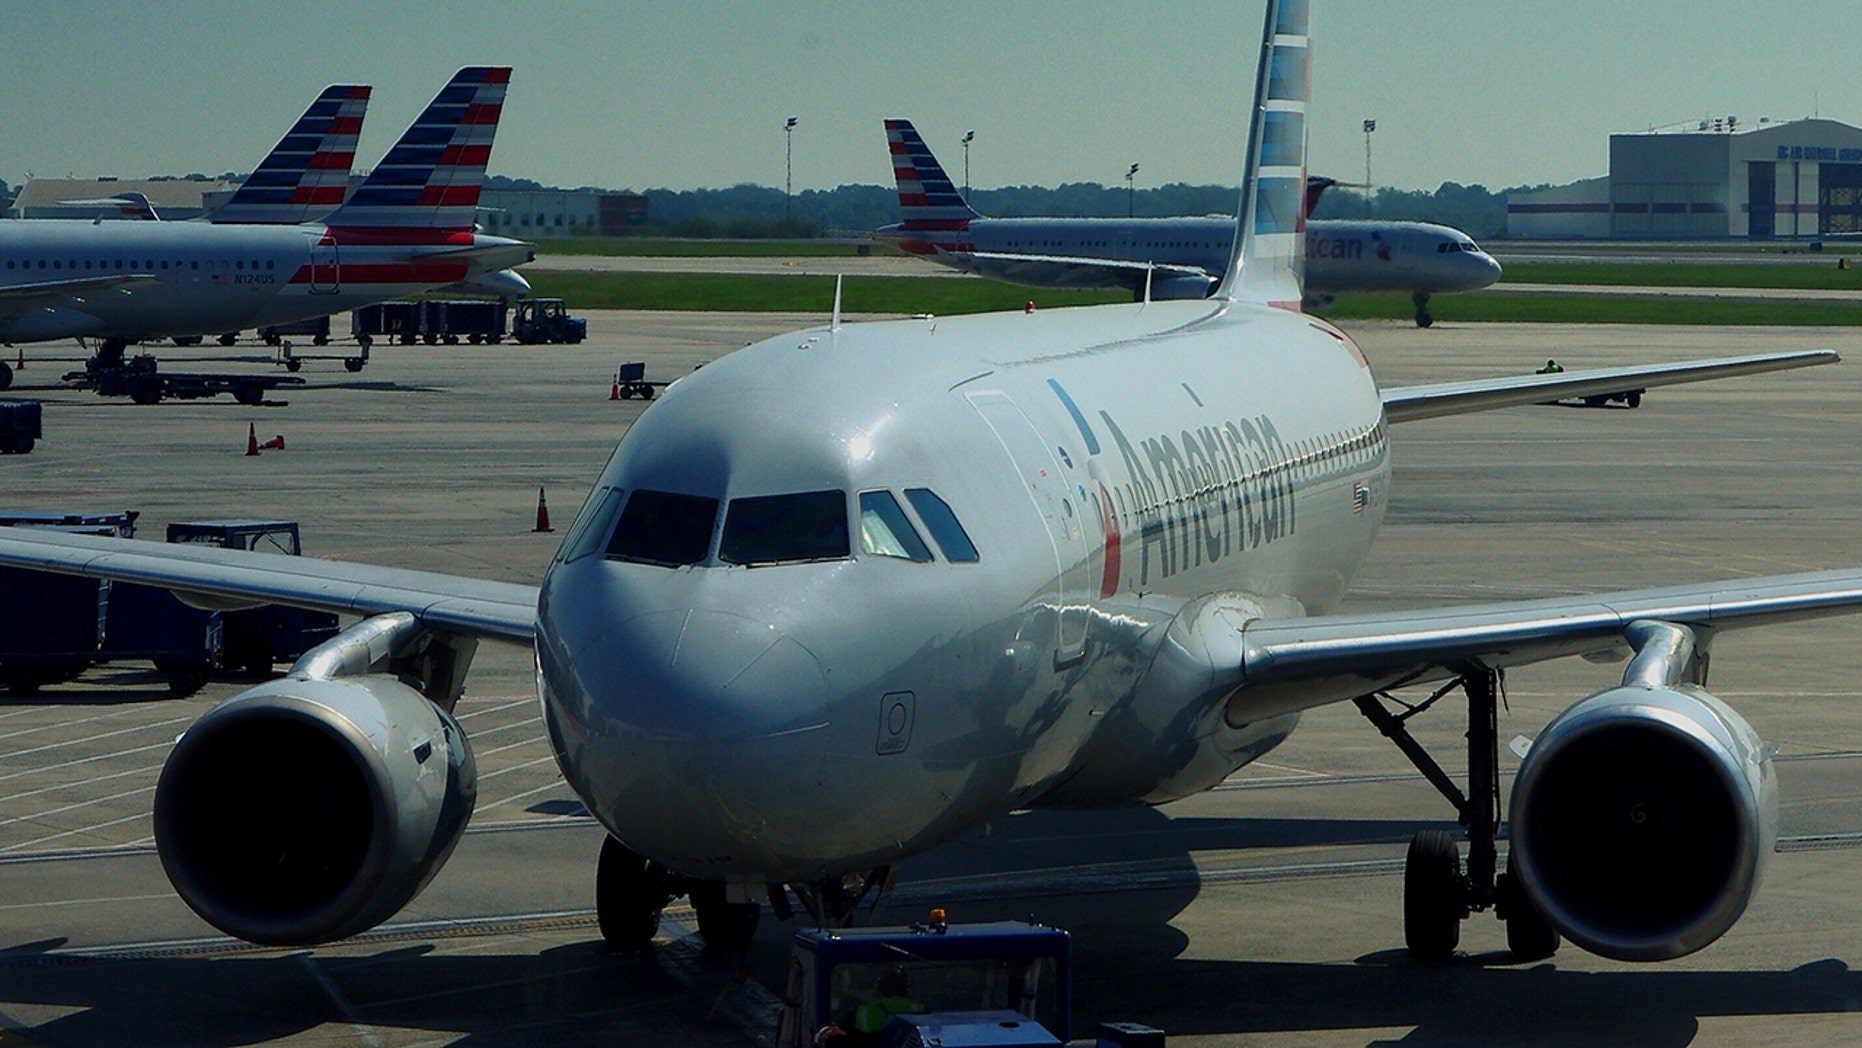 PSA Airlines, which is wholly owned by American Airlines, was forced to cancel about 70 more flights on Sunday evening, affecting schedules through Monday morning.